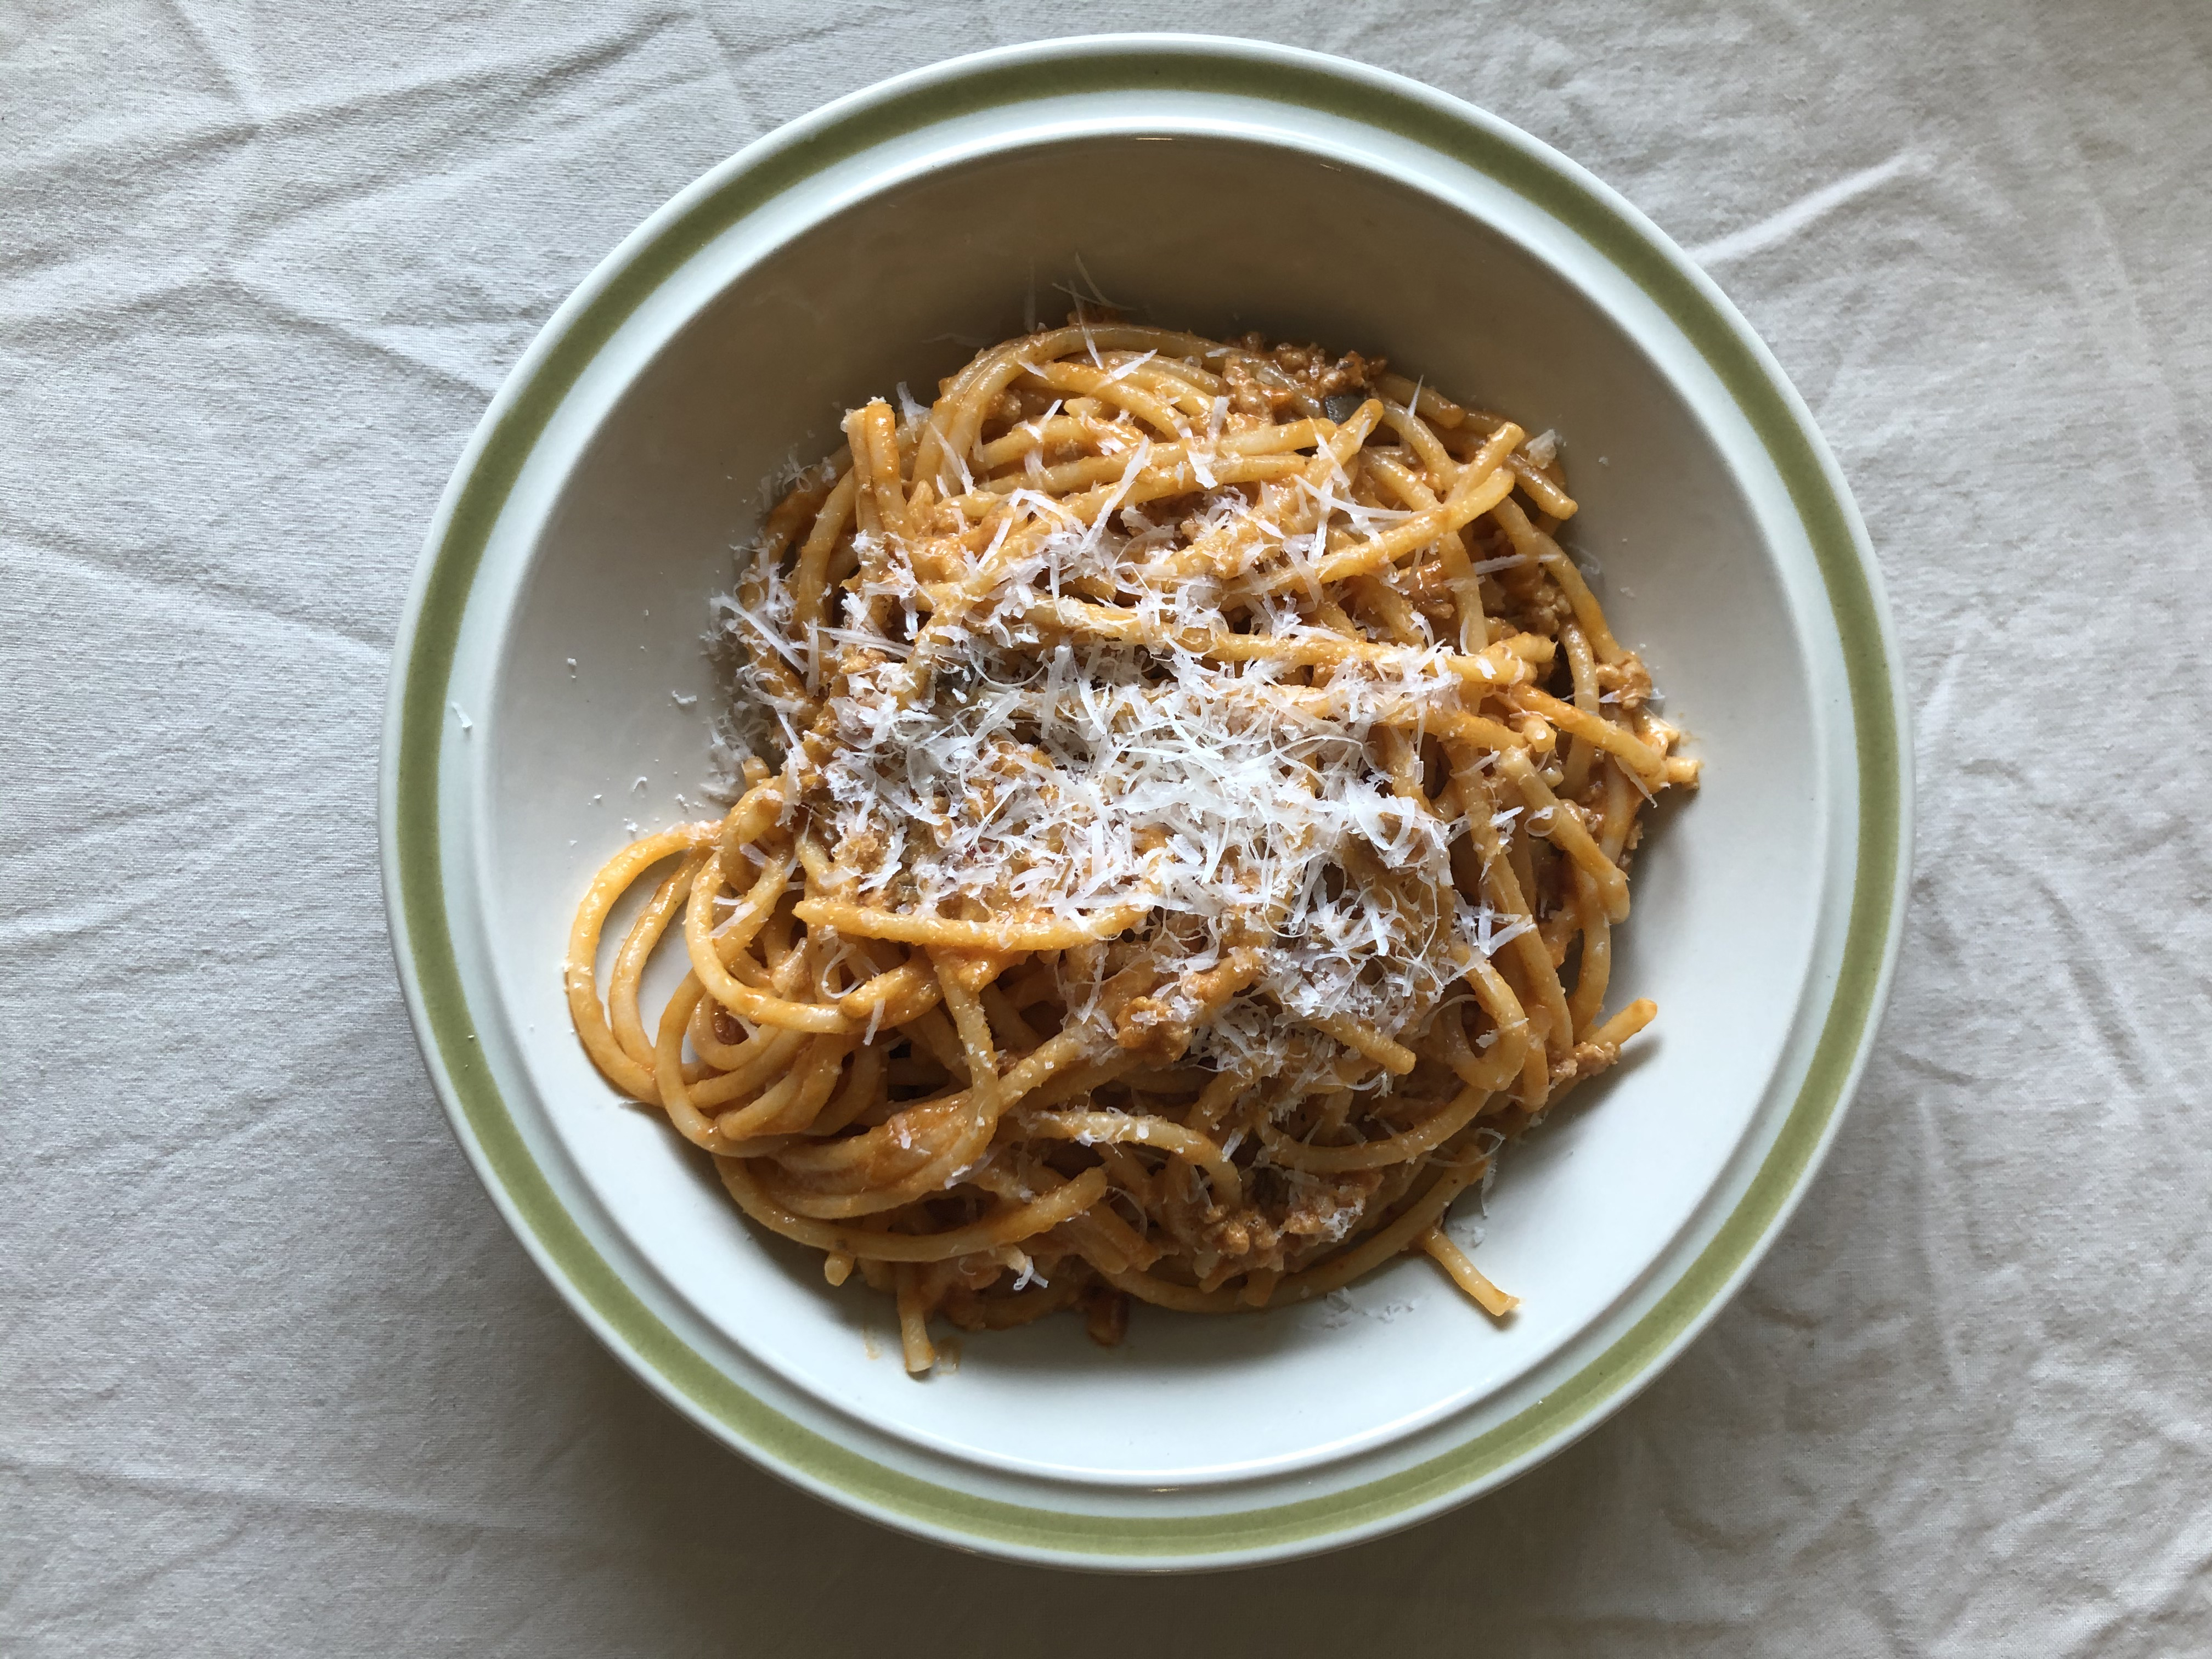 A pasta dish from Le Cowboy